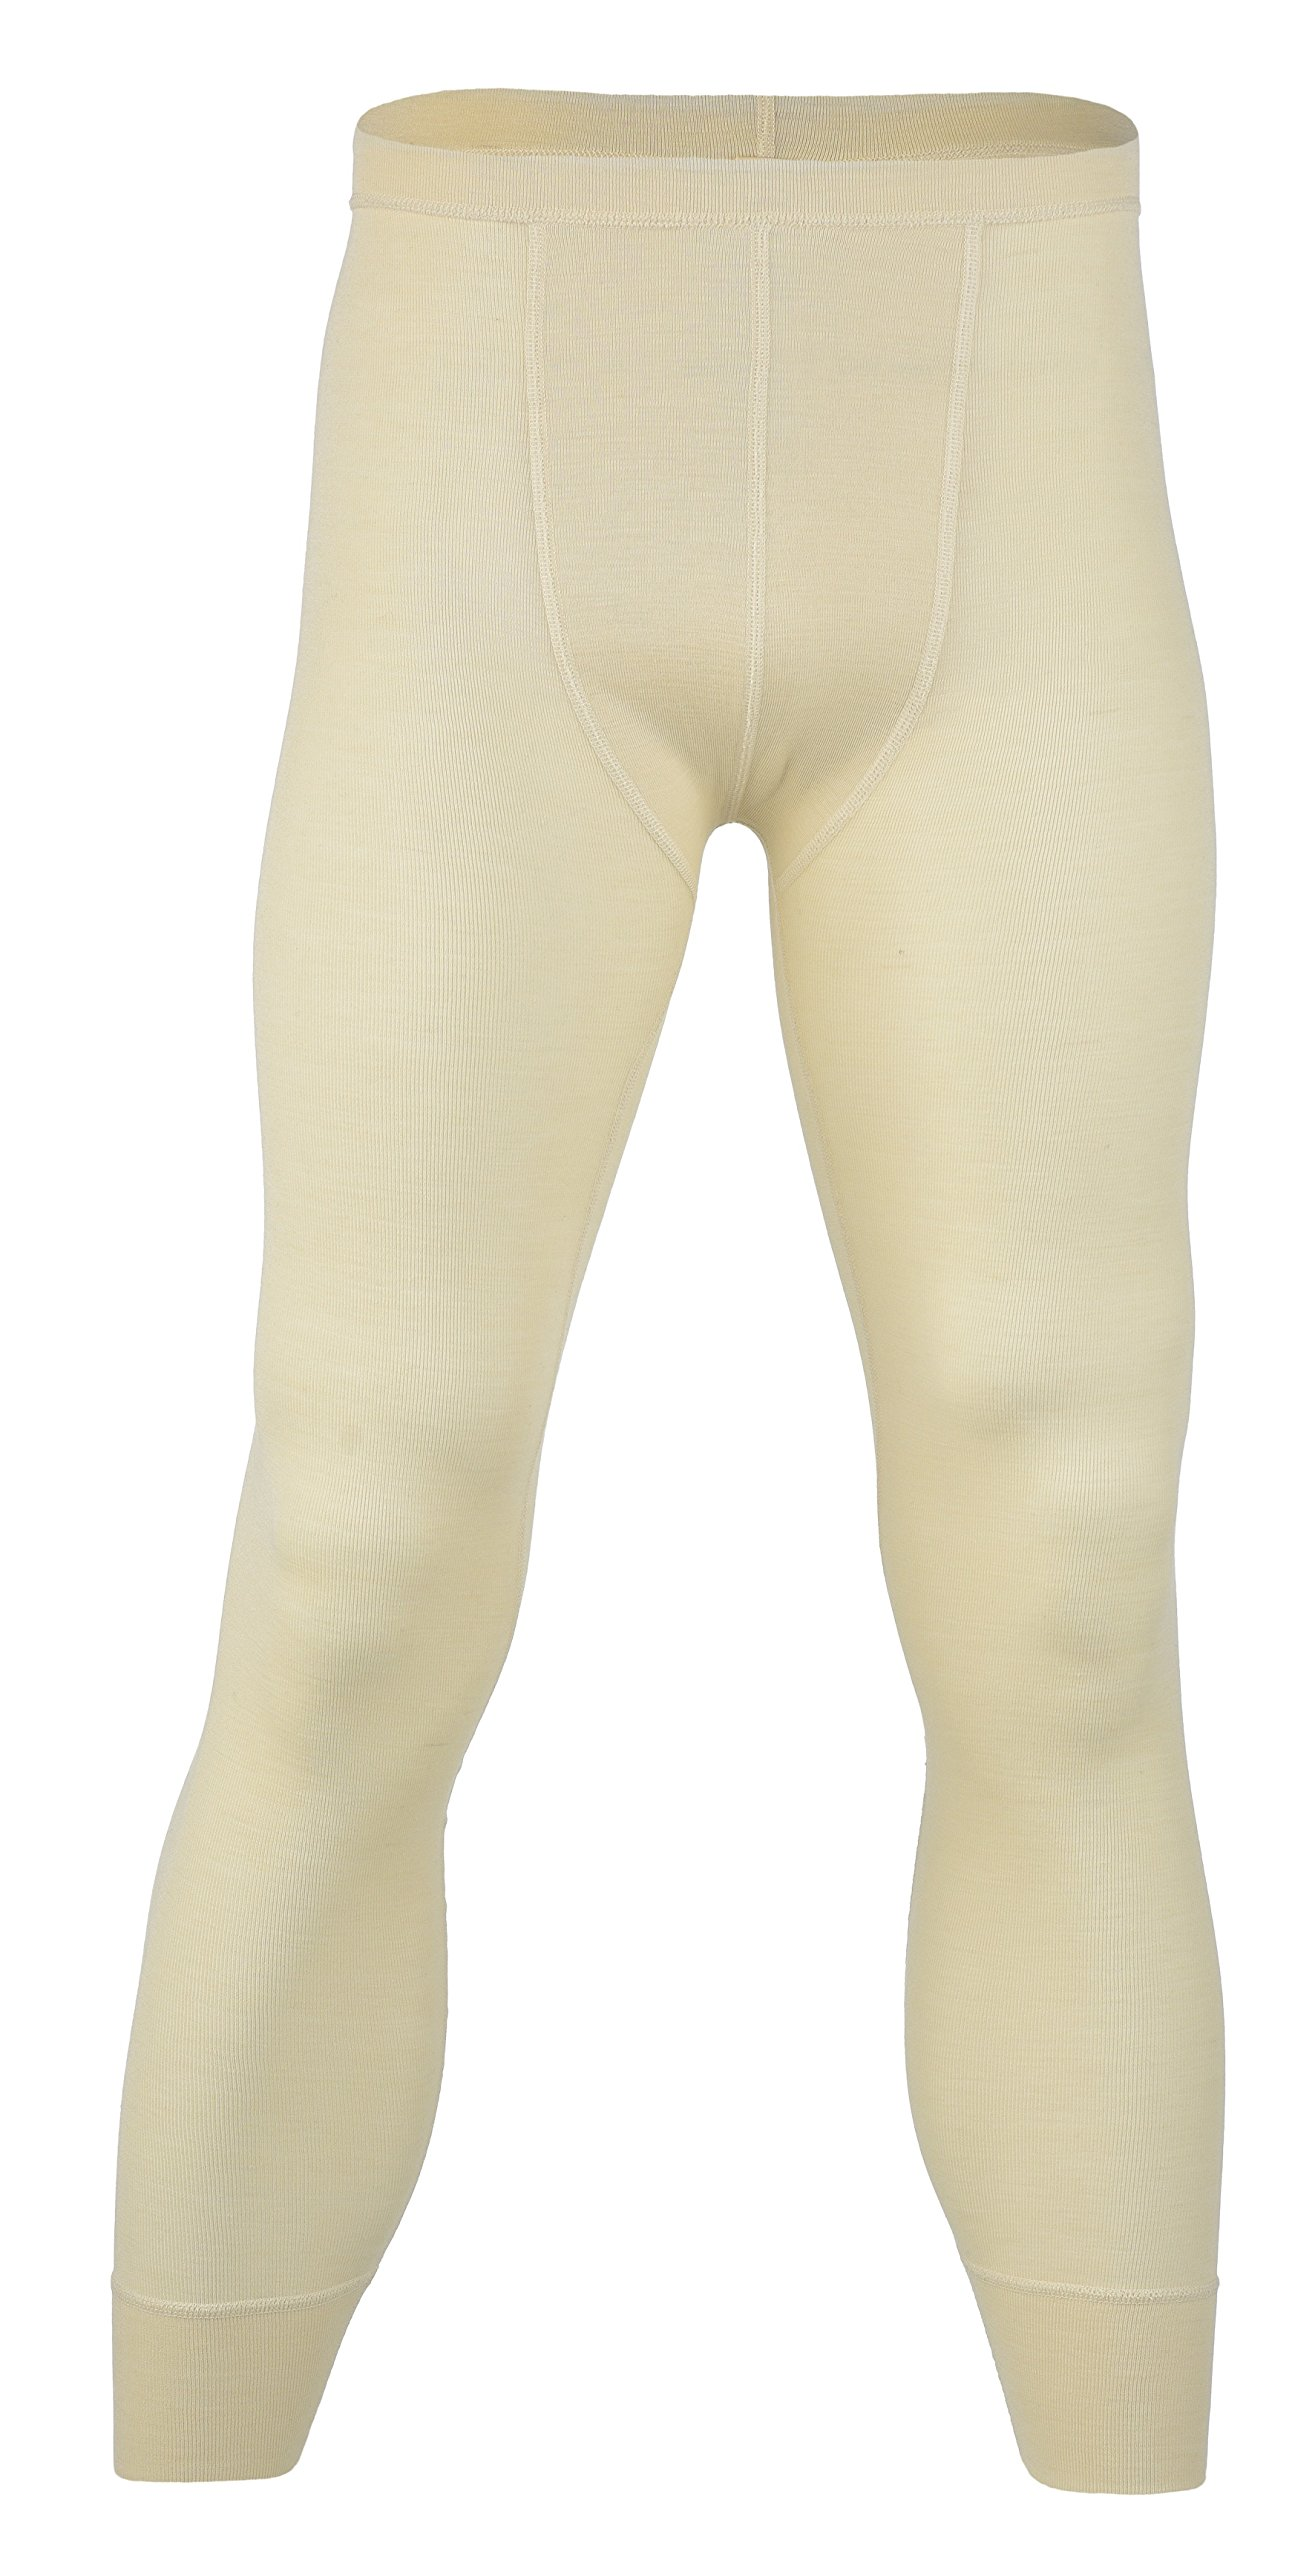 Engel 70% Organic Merino Wool 30% Silk Men's Long Johns Leggings. Made in Germany. (Natural, EU 46/48) by Engel